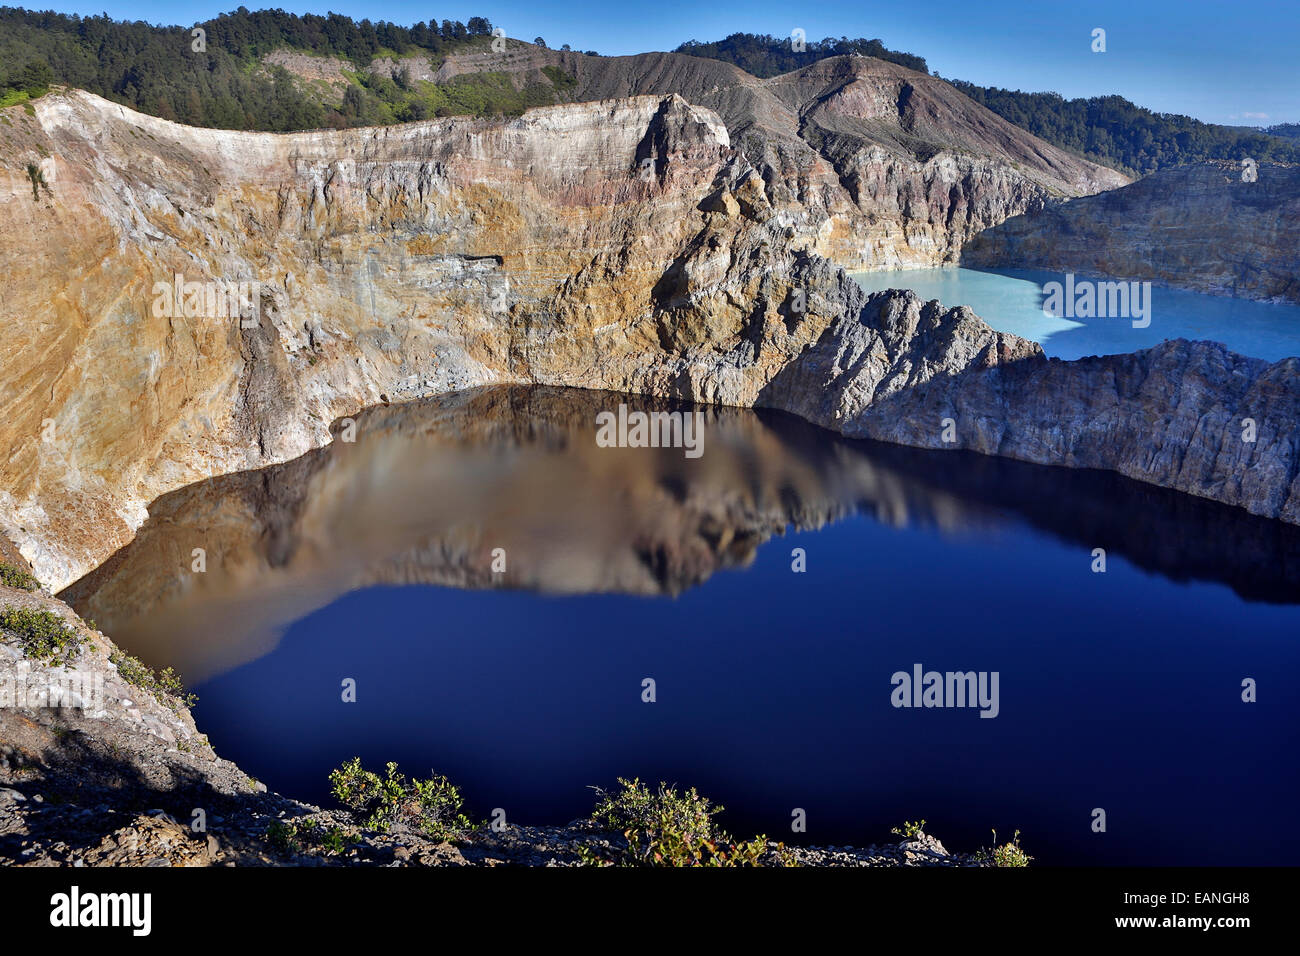 Kelimutu volcano crater lakes and caldera, Flores Island, Indonesia Stock Photo